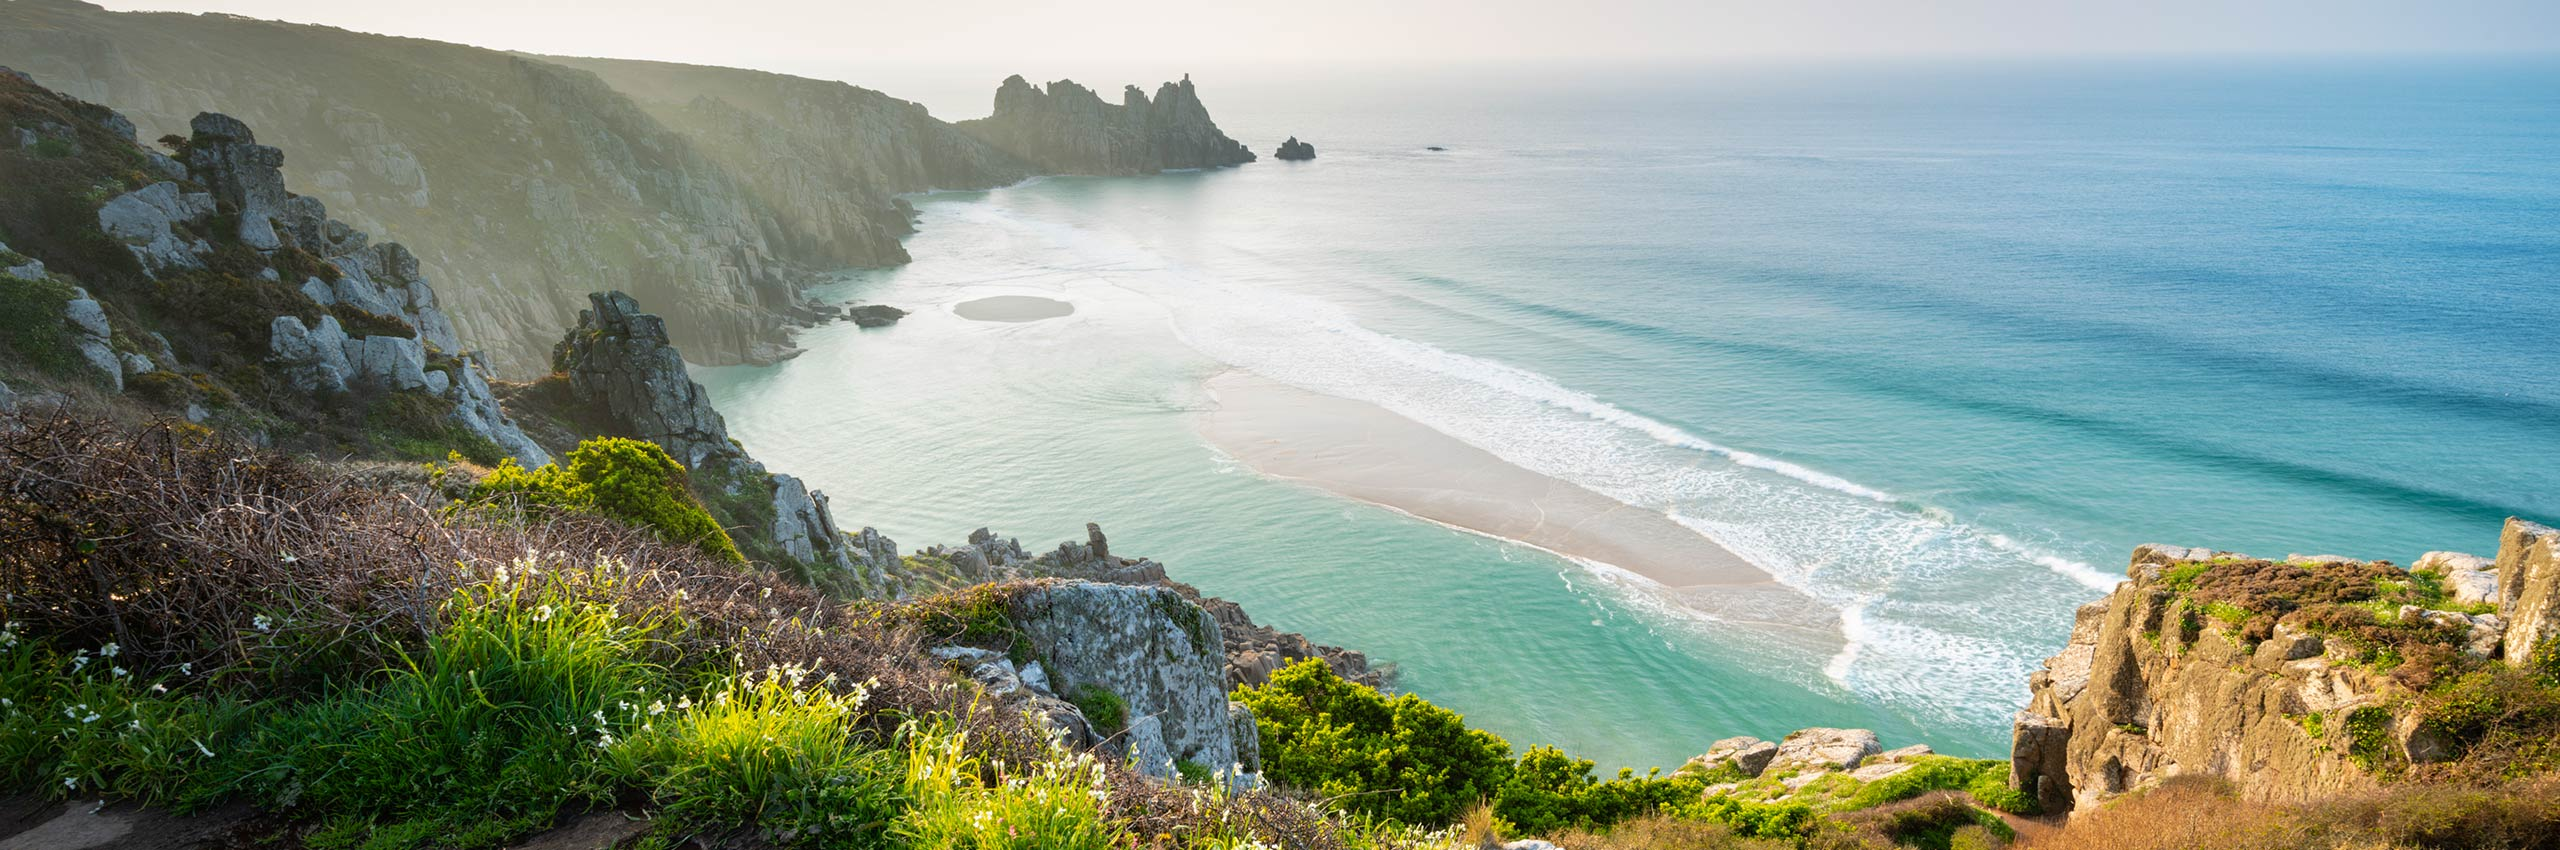 FCR-518889 | UK/England, Cornwall, Porthcurno | © Justin Foulkes/4Corners